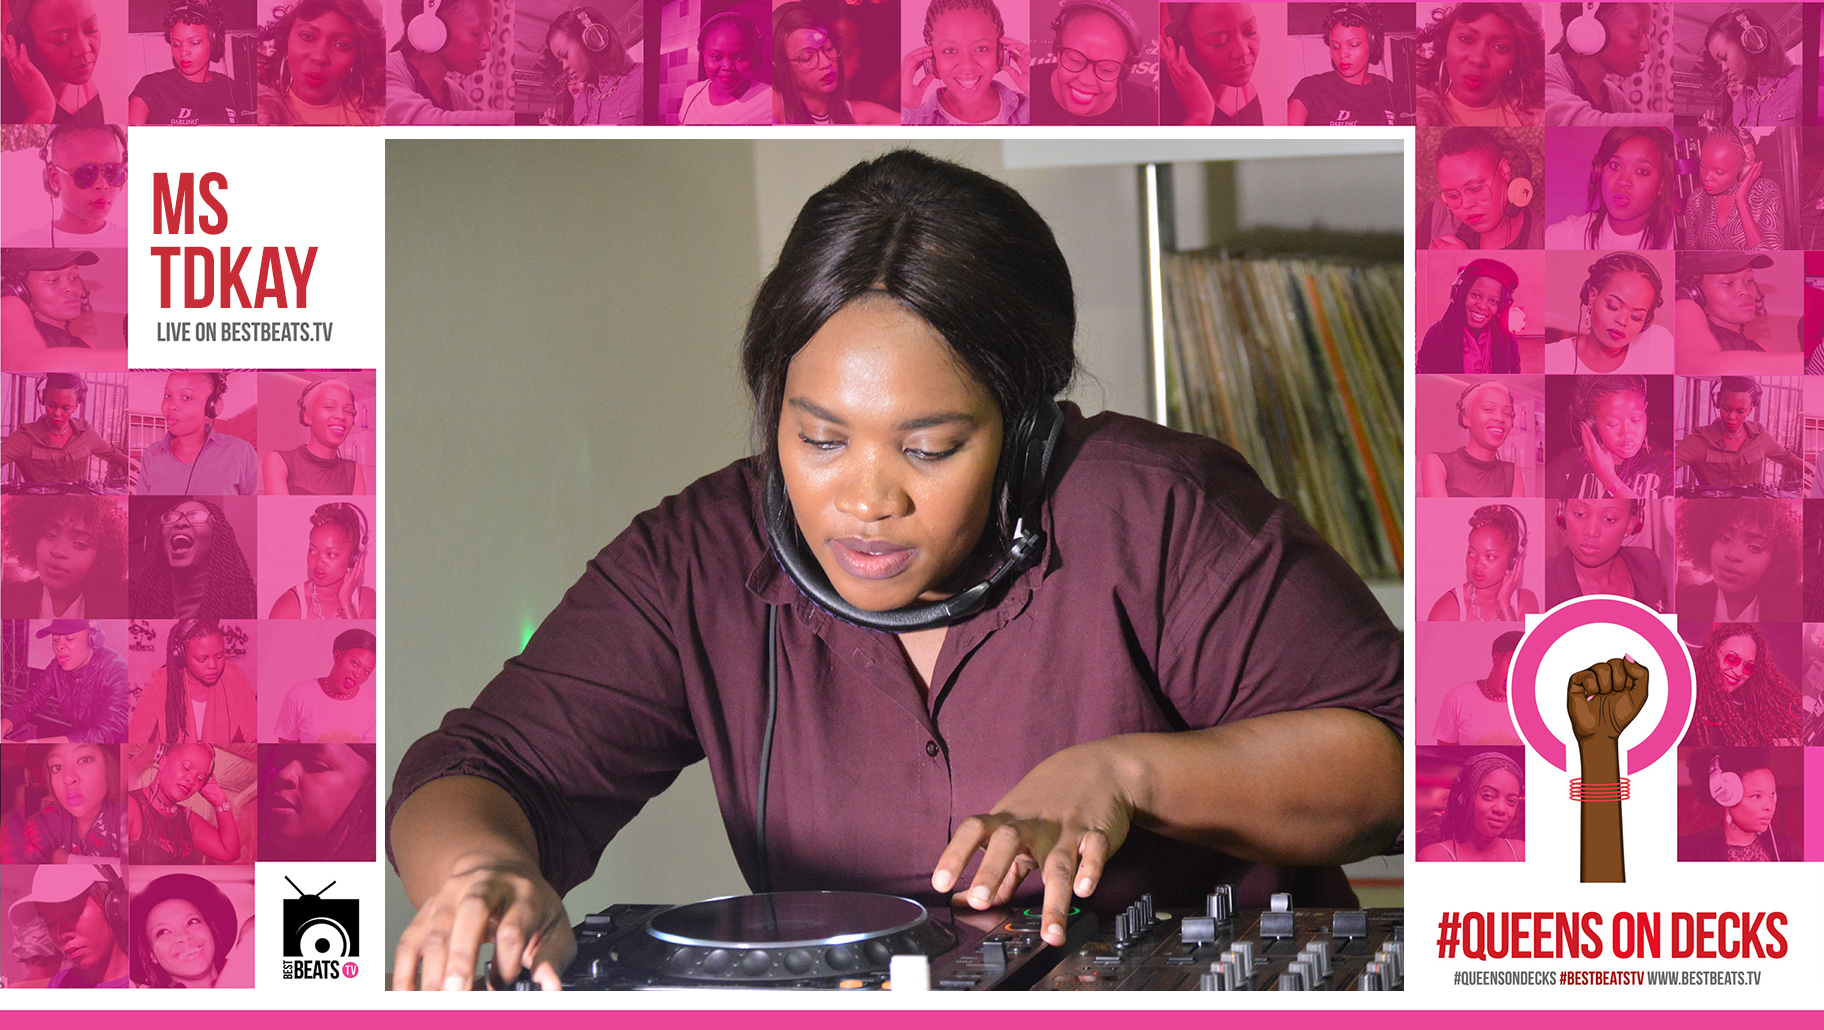 Ms TDkay with your #QueensOnDecks #LunchTymMix